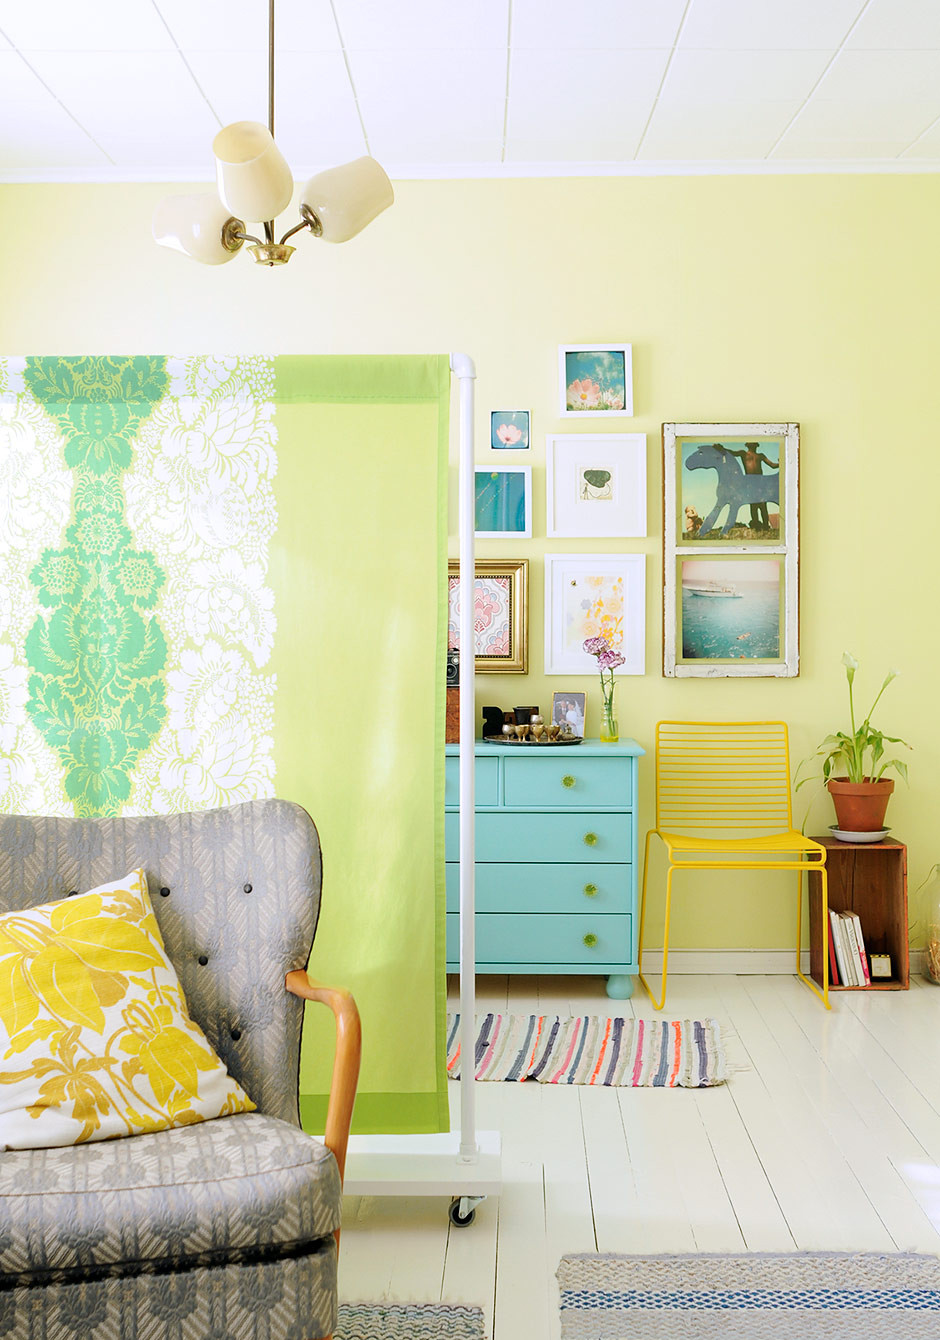 Best ideas about DIY Room Divider Screen . Save or Pin 20 DIY Room Dividers To Help Utilize Every Inch Your Home Now.